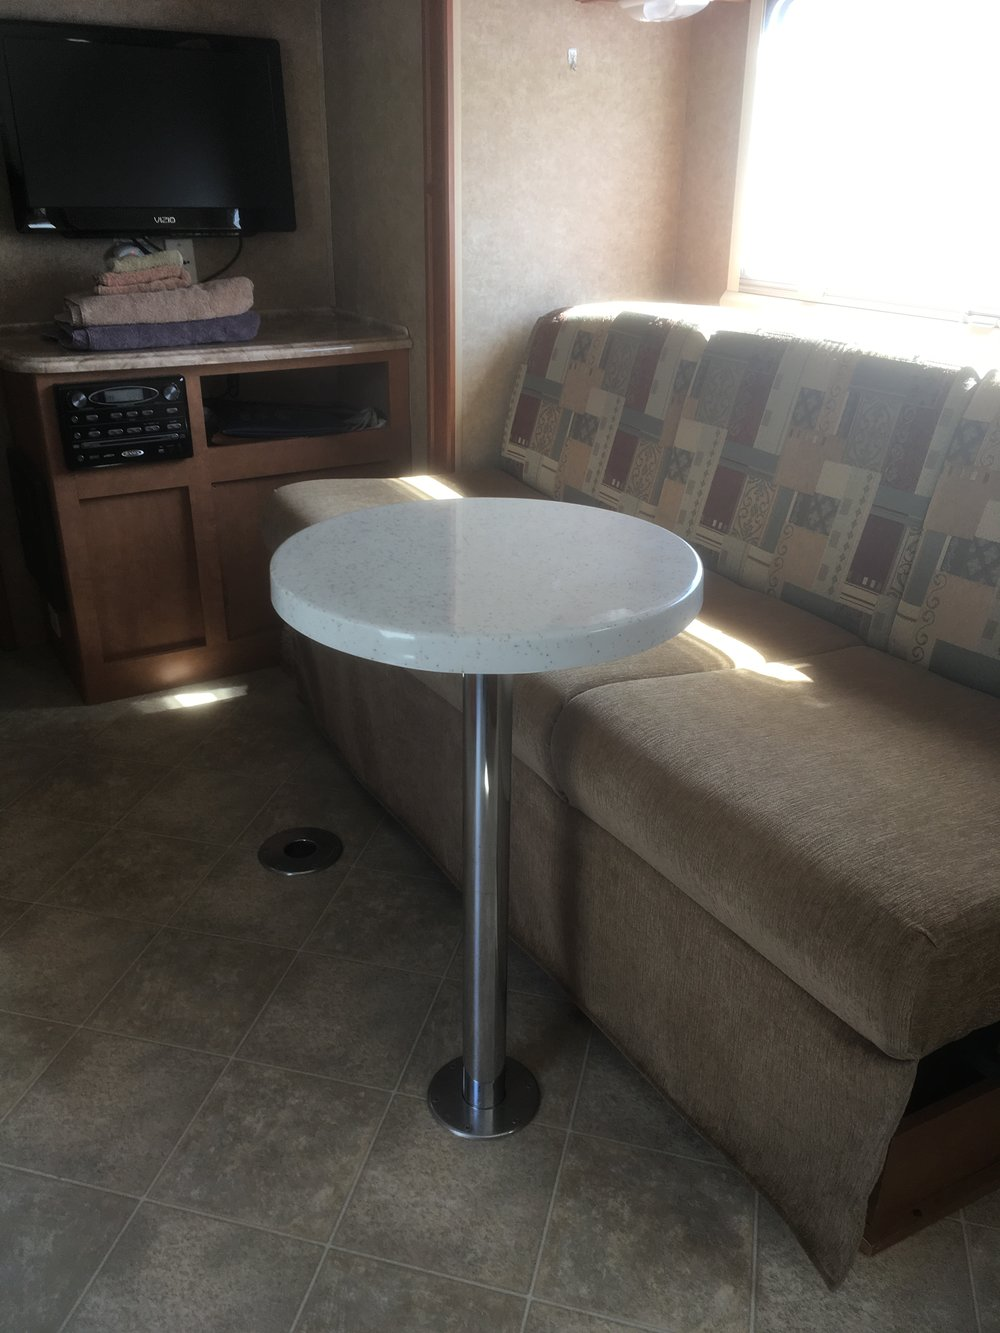 The Original RV Cafe Table saves space! Move easily around our table and enjoy your couch or dinette seating in greater comfort. Color may vary slightly from what is pictured here.